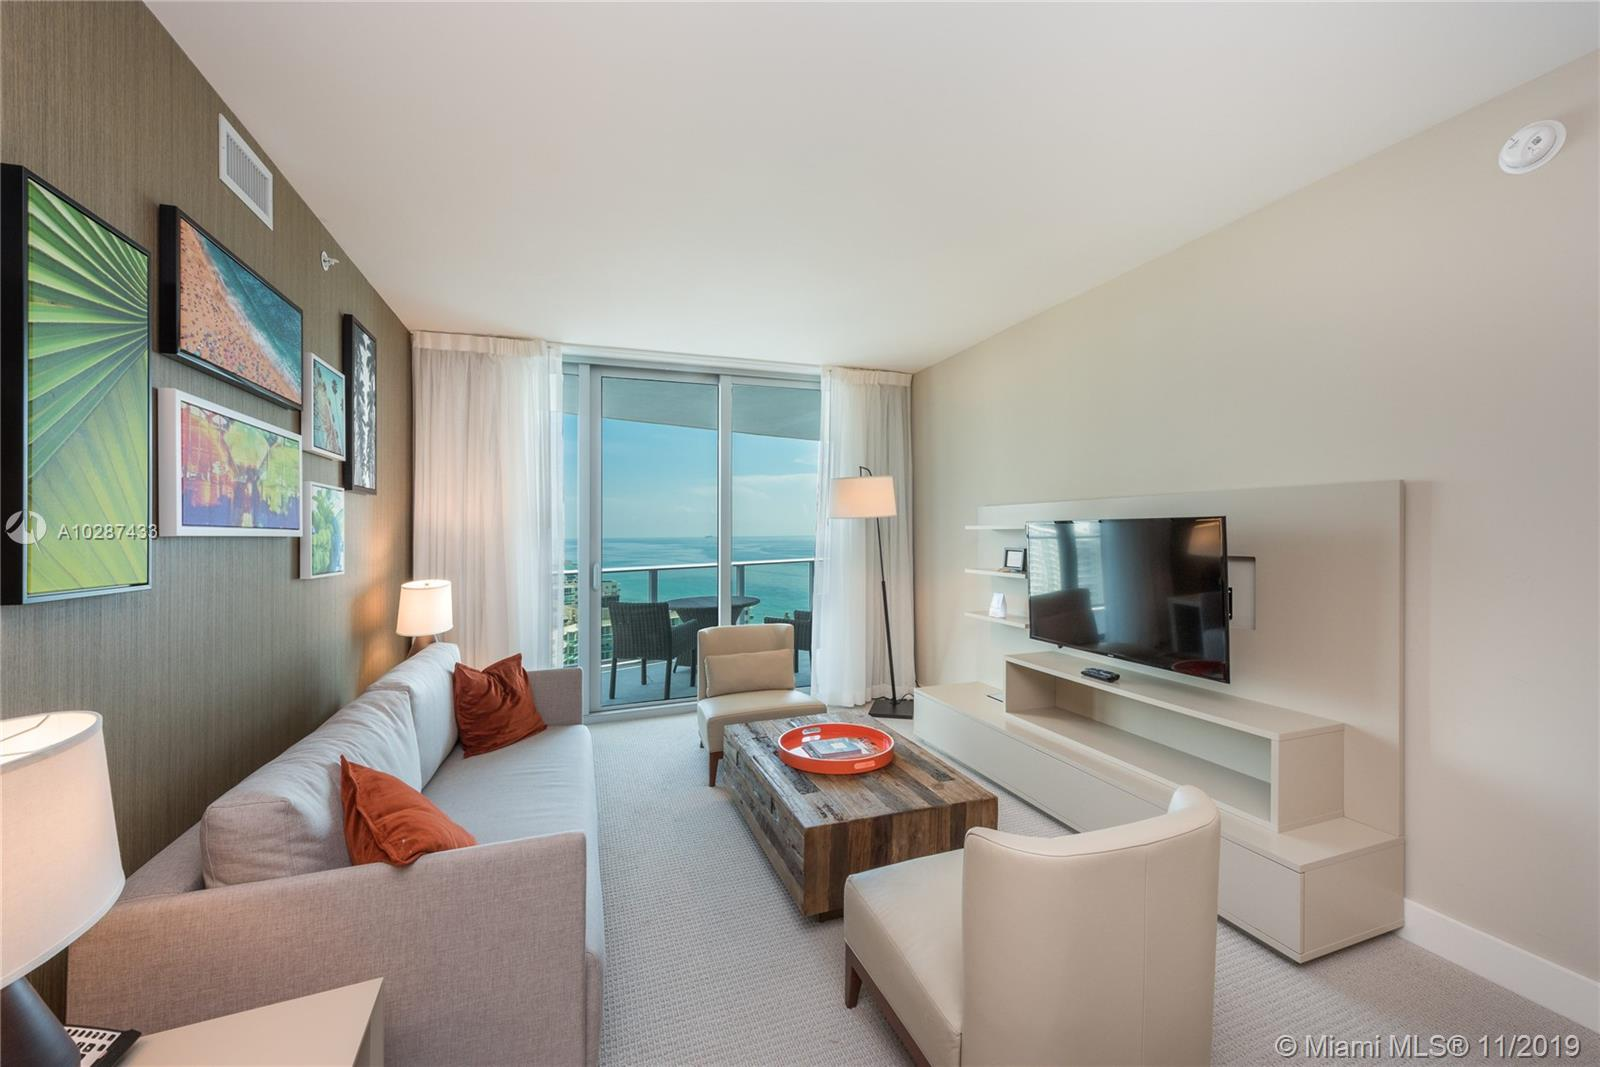 4111 S Ocean Dr # 1808, Hollywood, Florida 33019, 2 Bedrooms Bedrooms, ,2 BathroomsBathrooms,Residential,For Sale,4111 S Ocean Dr # 1808,A10287433